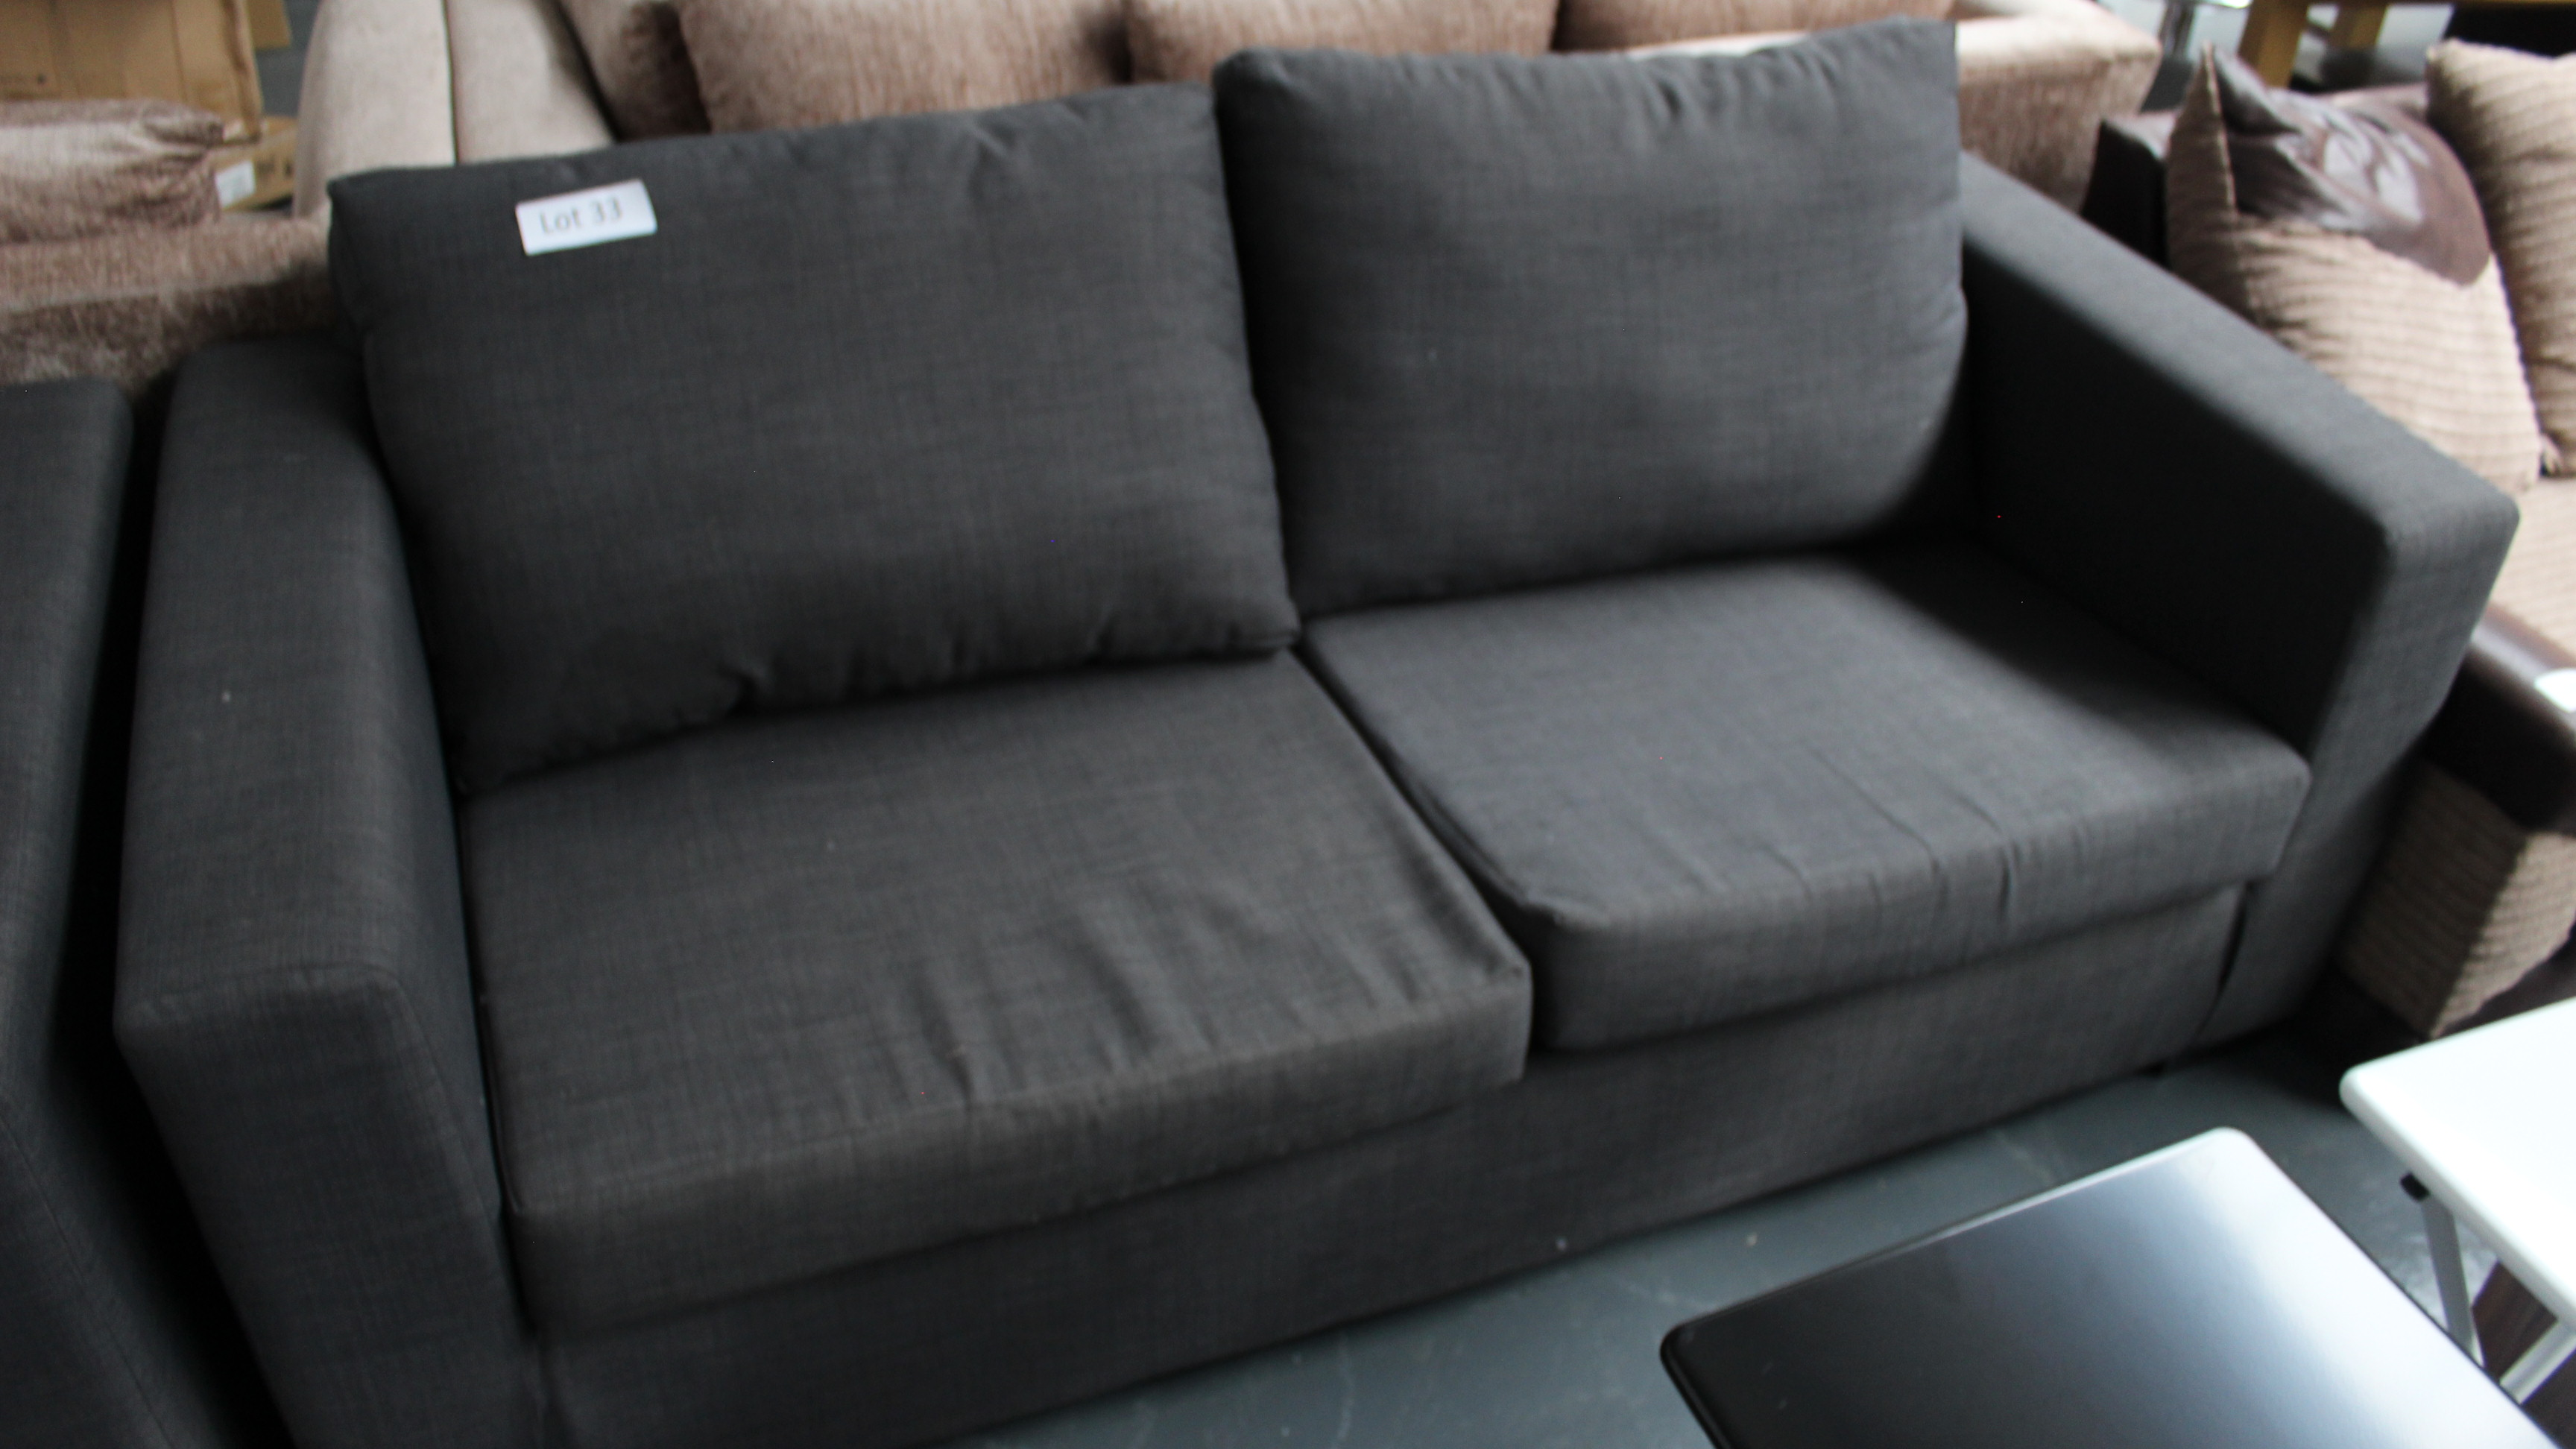 Lot 33 - 3 Seater Charcoal Sofa. Customer Returns